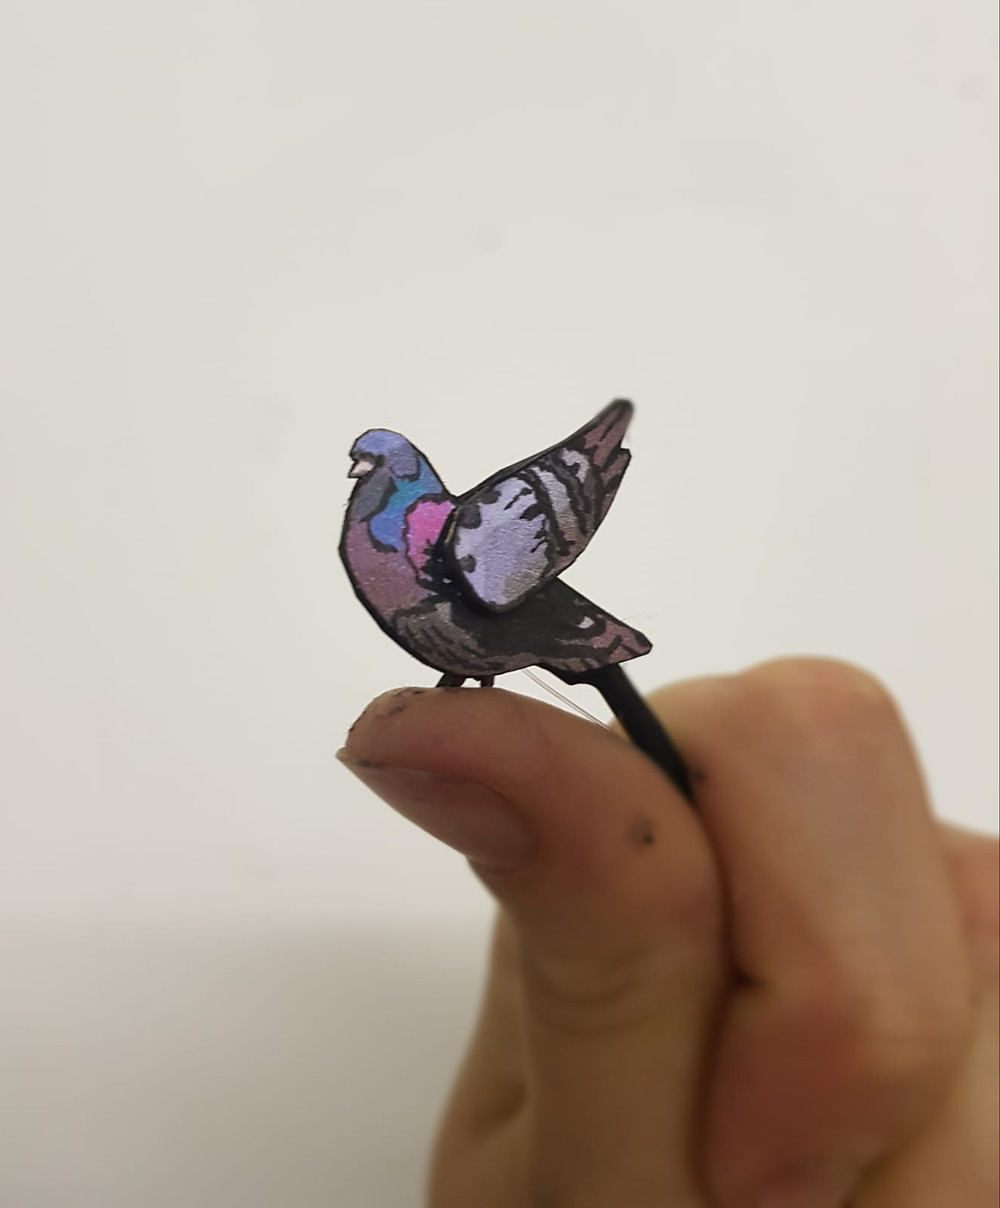 A tiny pigeon puppet character